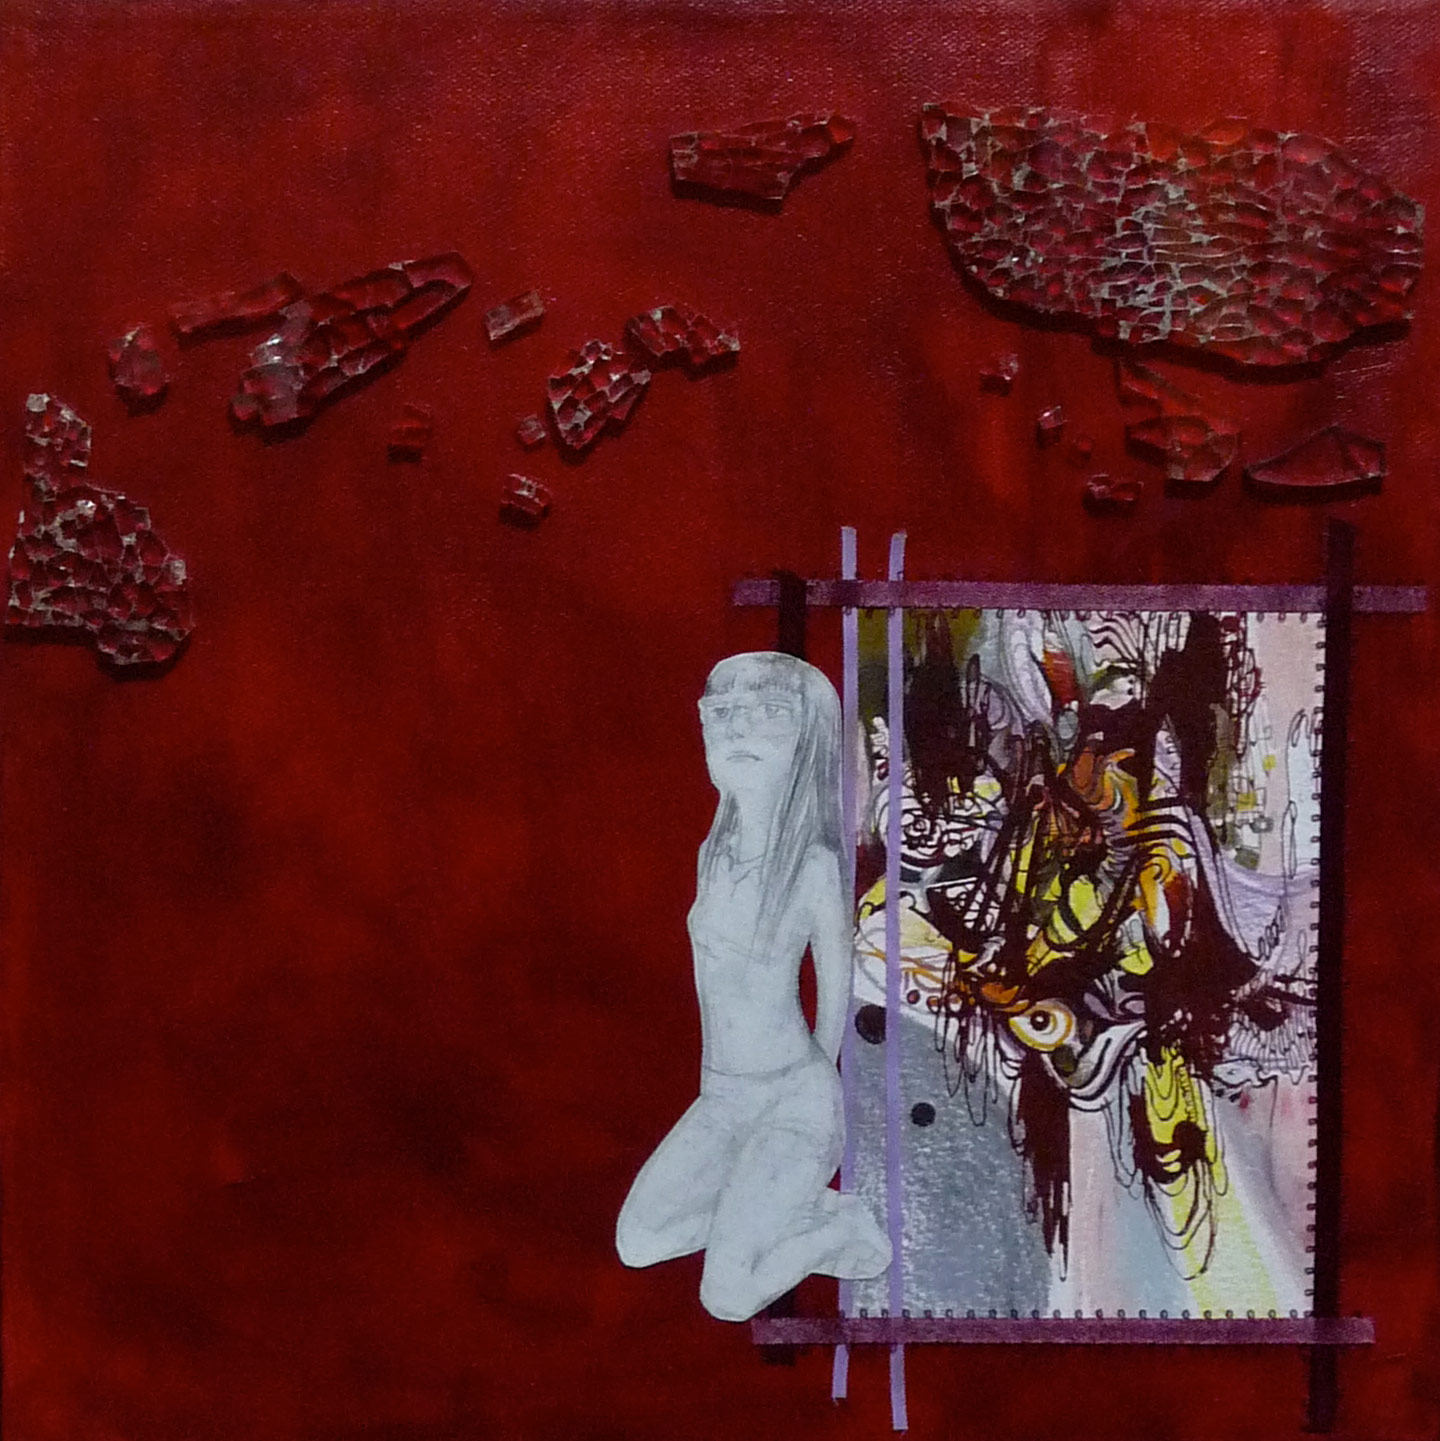 Watching Wounds Dismantle, 2007